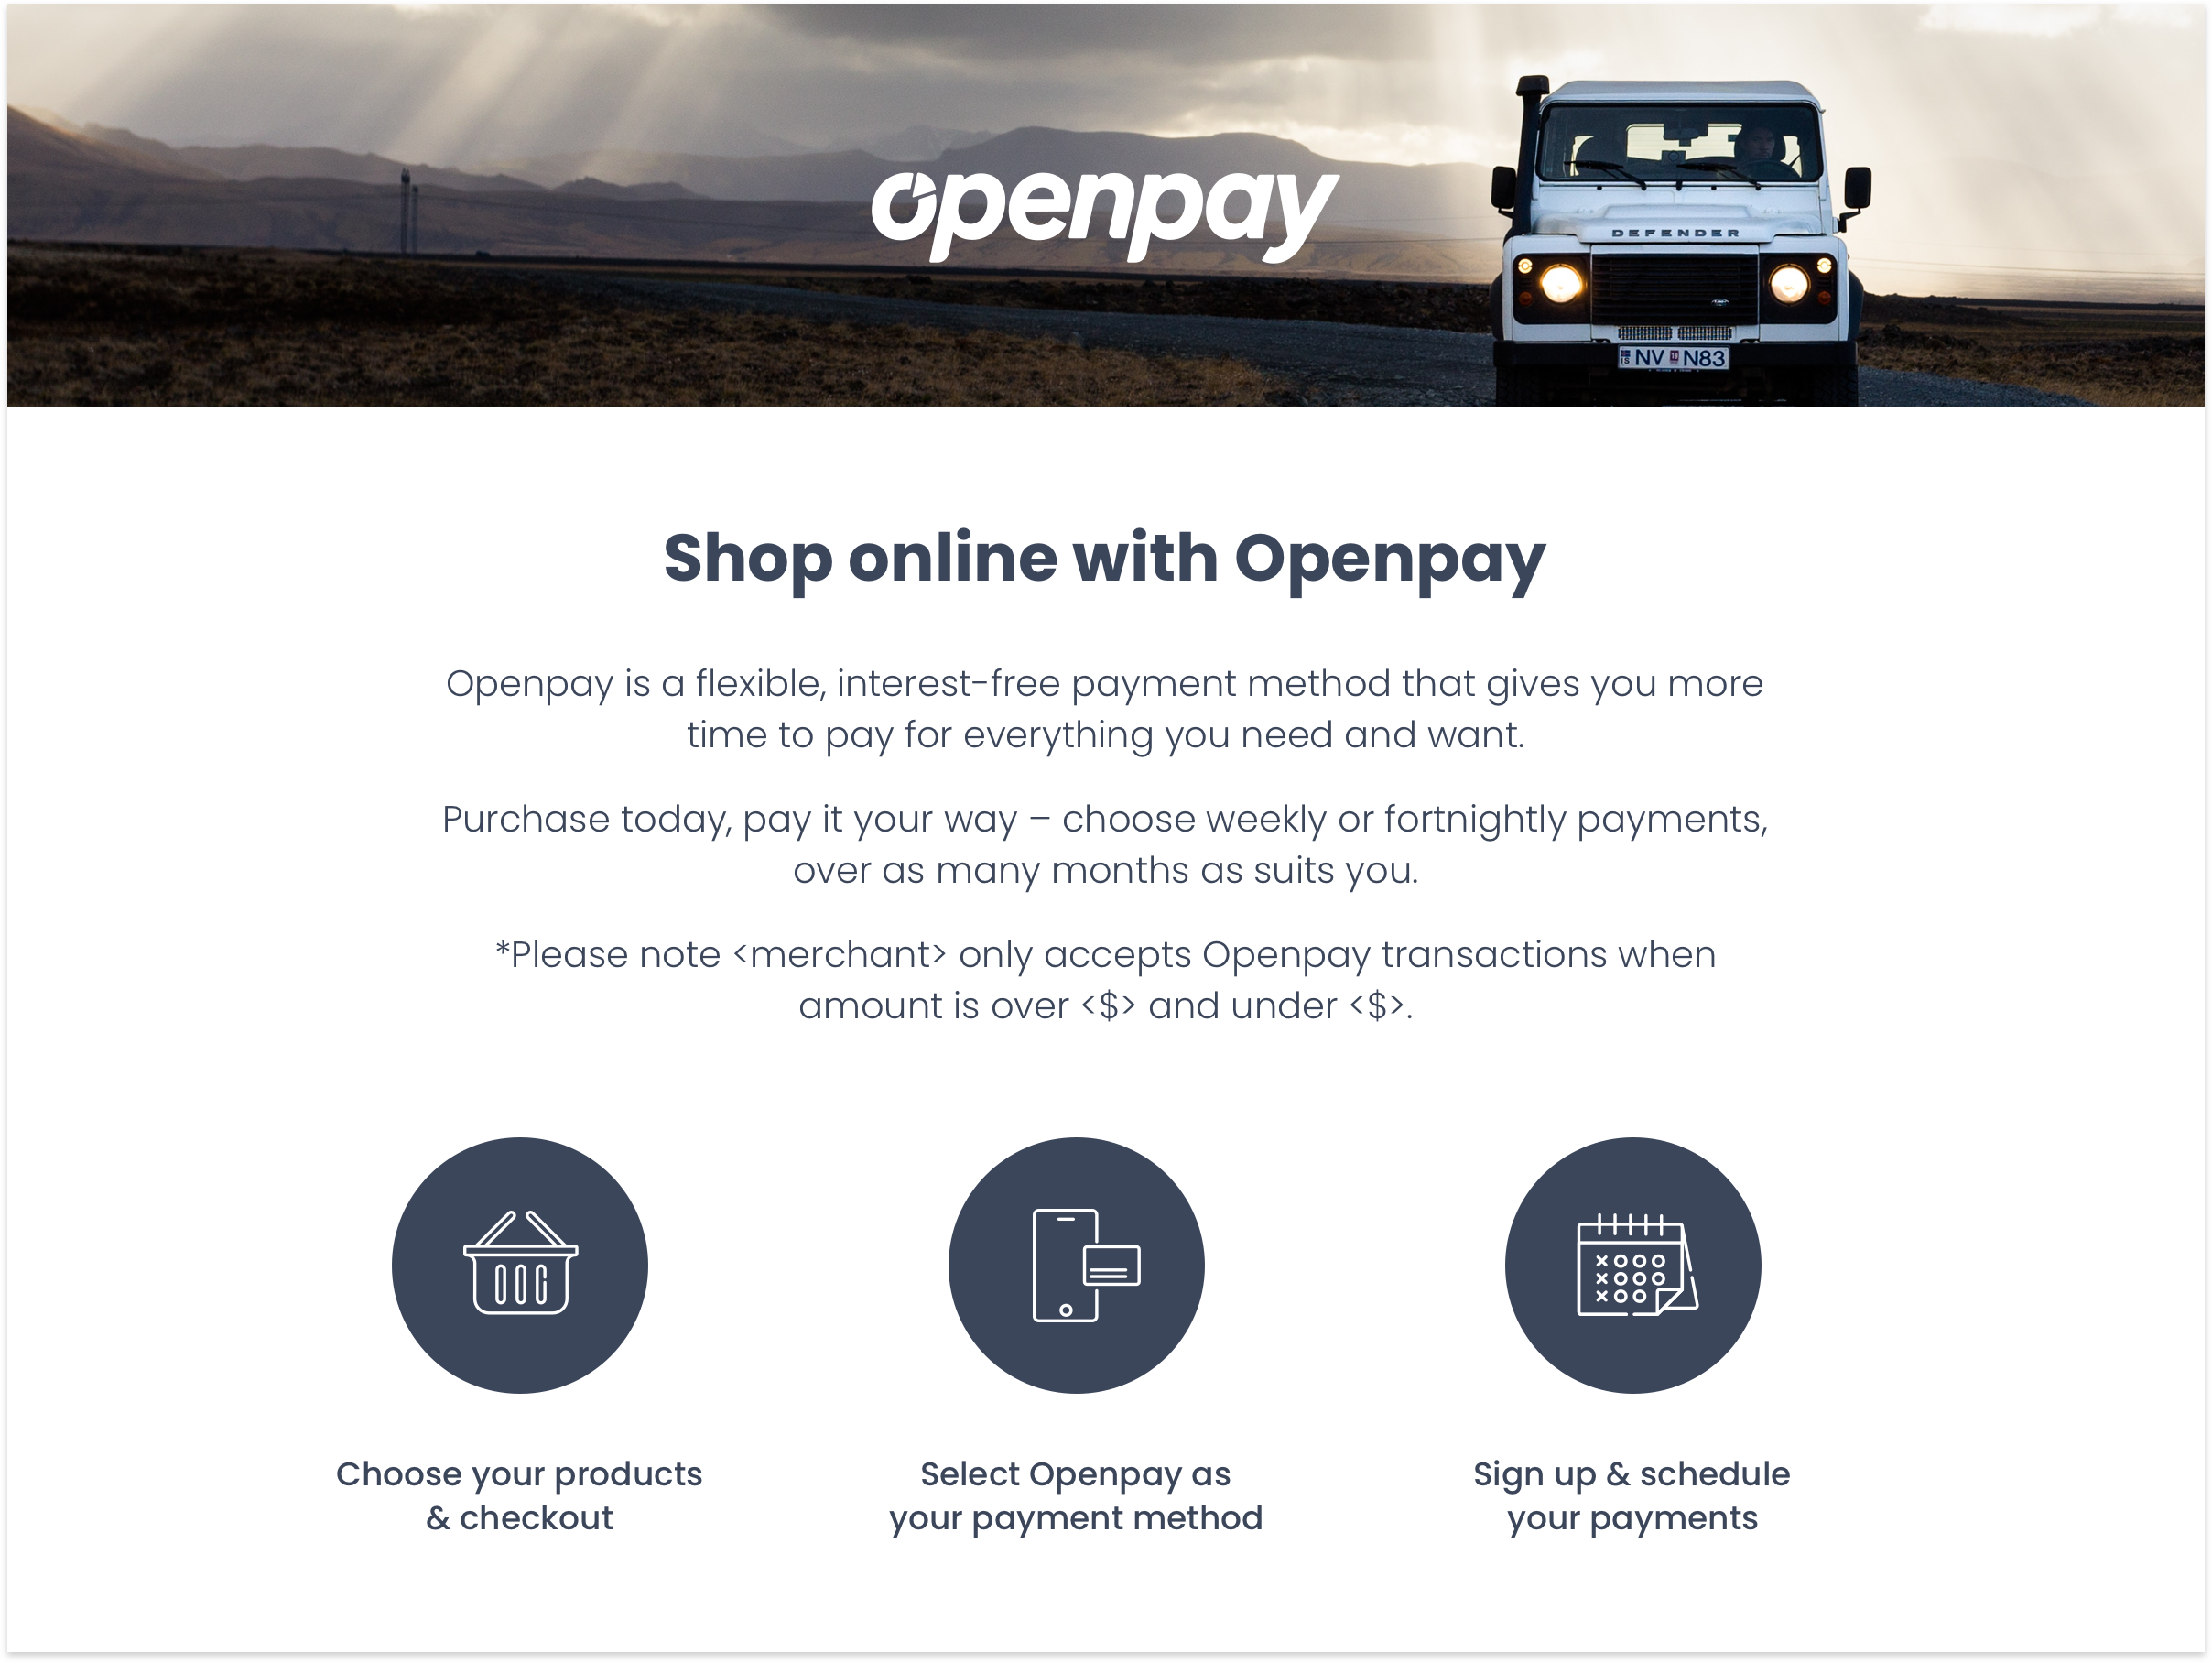 Openpay — Brand Identity, guideline and assets